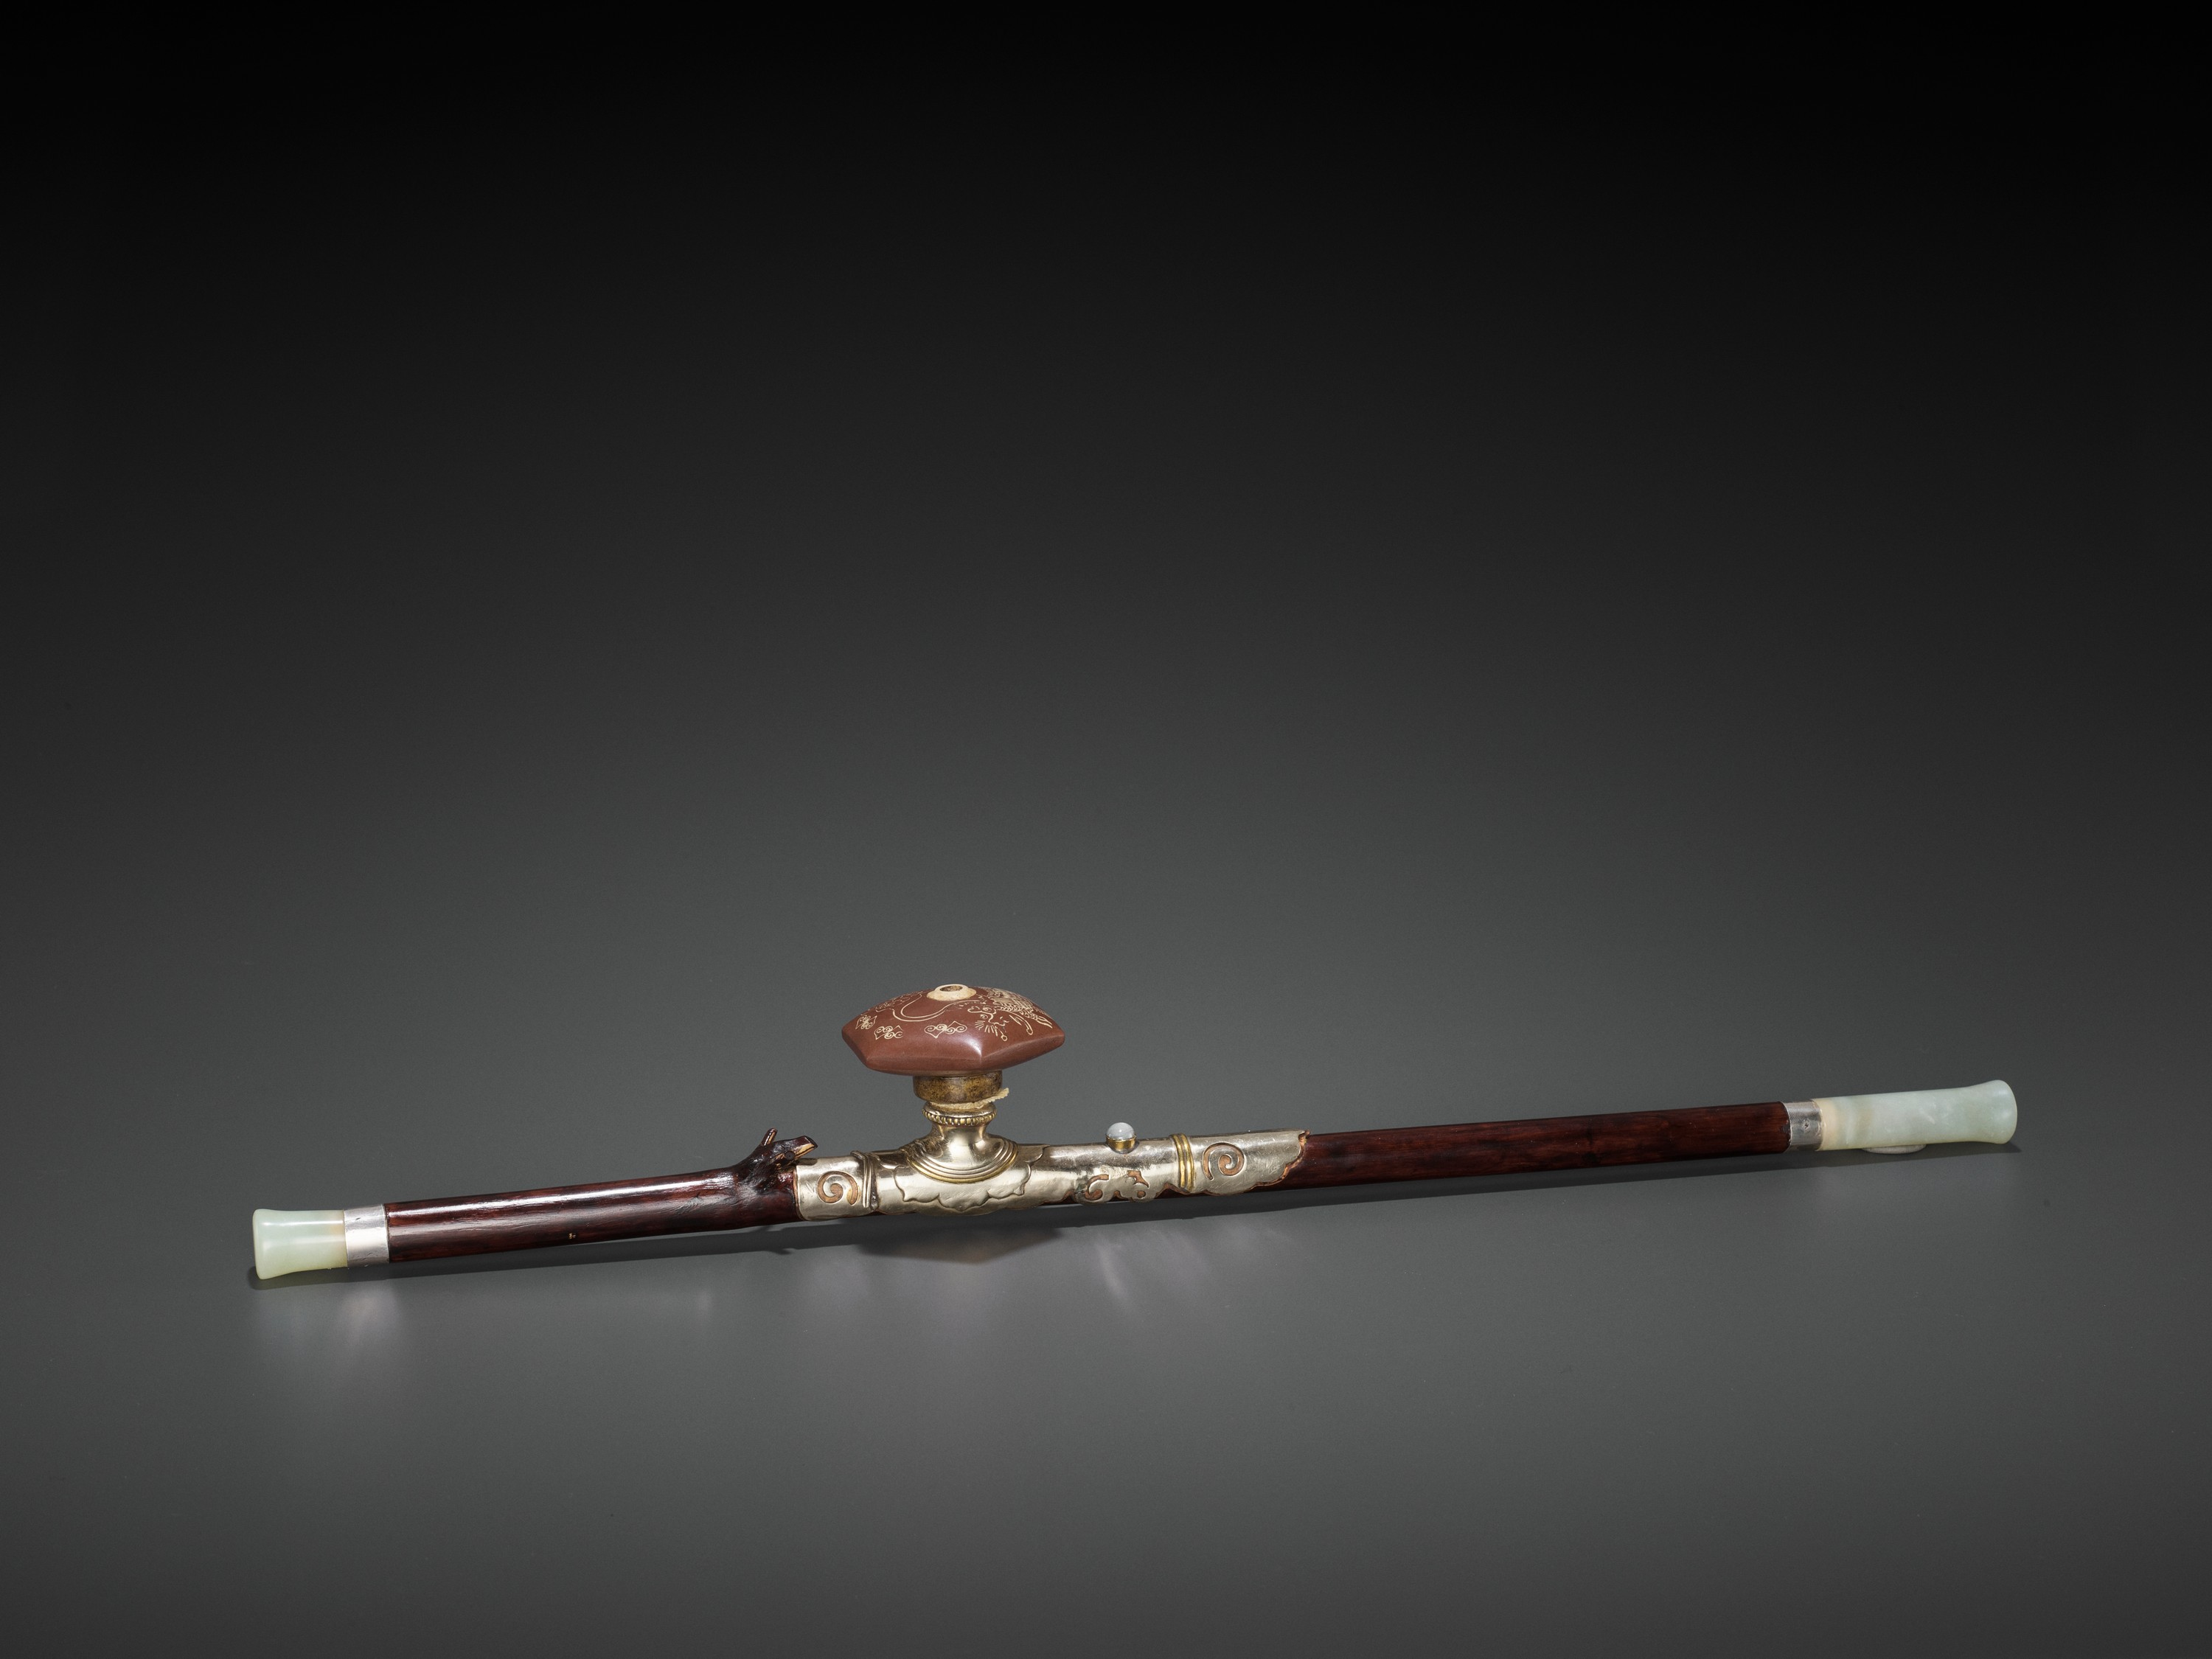 A BAMBOO OPIUM PIPE WITH HARDSTONE, SILVER AND YIXING CERAMIC FITTINGS, LATE QING TO REPUBLIC - Image 2 of 10